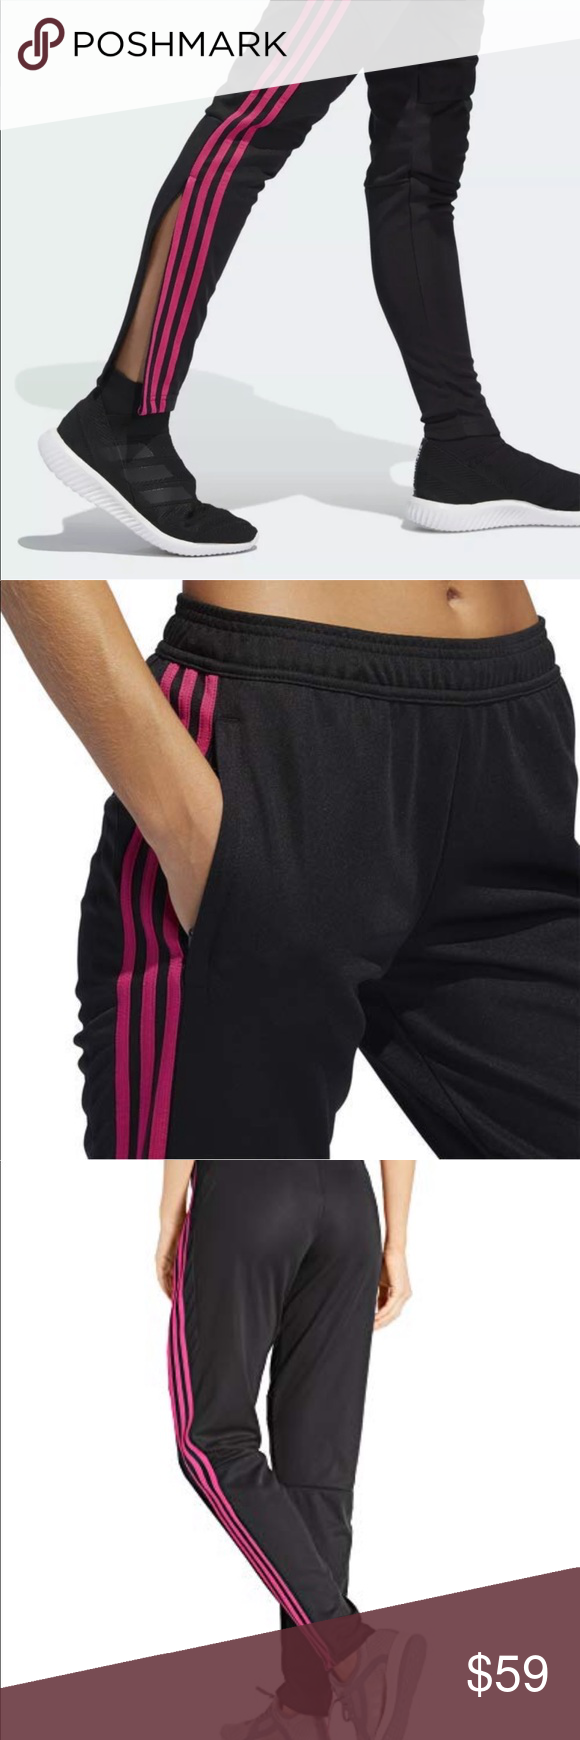 92f36d8da3 Adidas Tiro 19 Soccer Training Pants Black/Magenta Condition is New ...